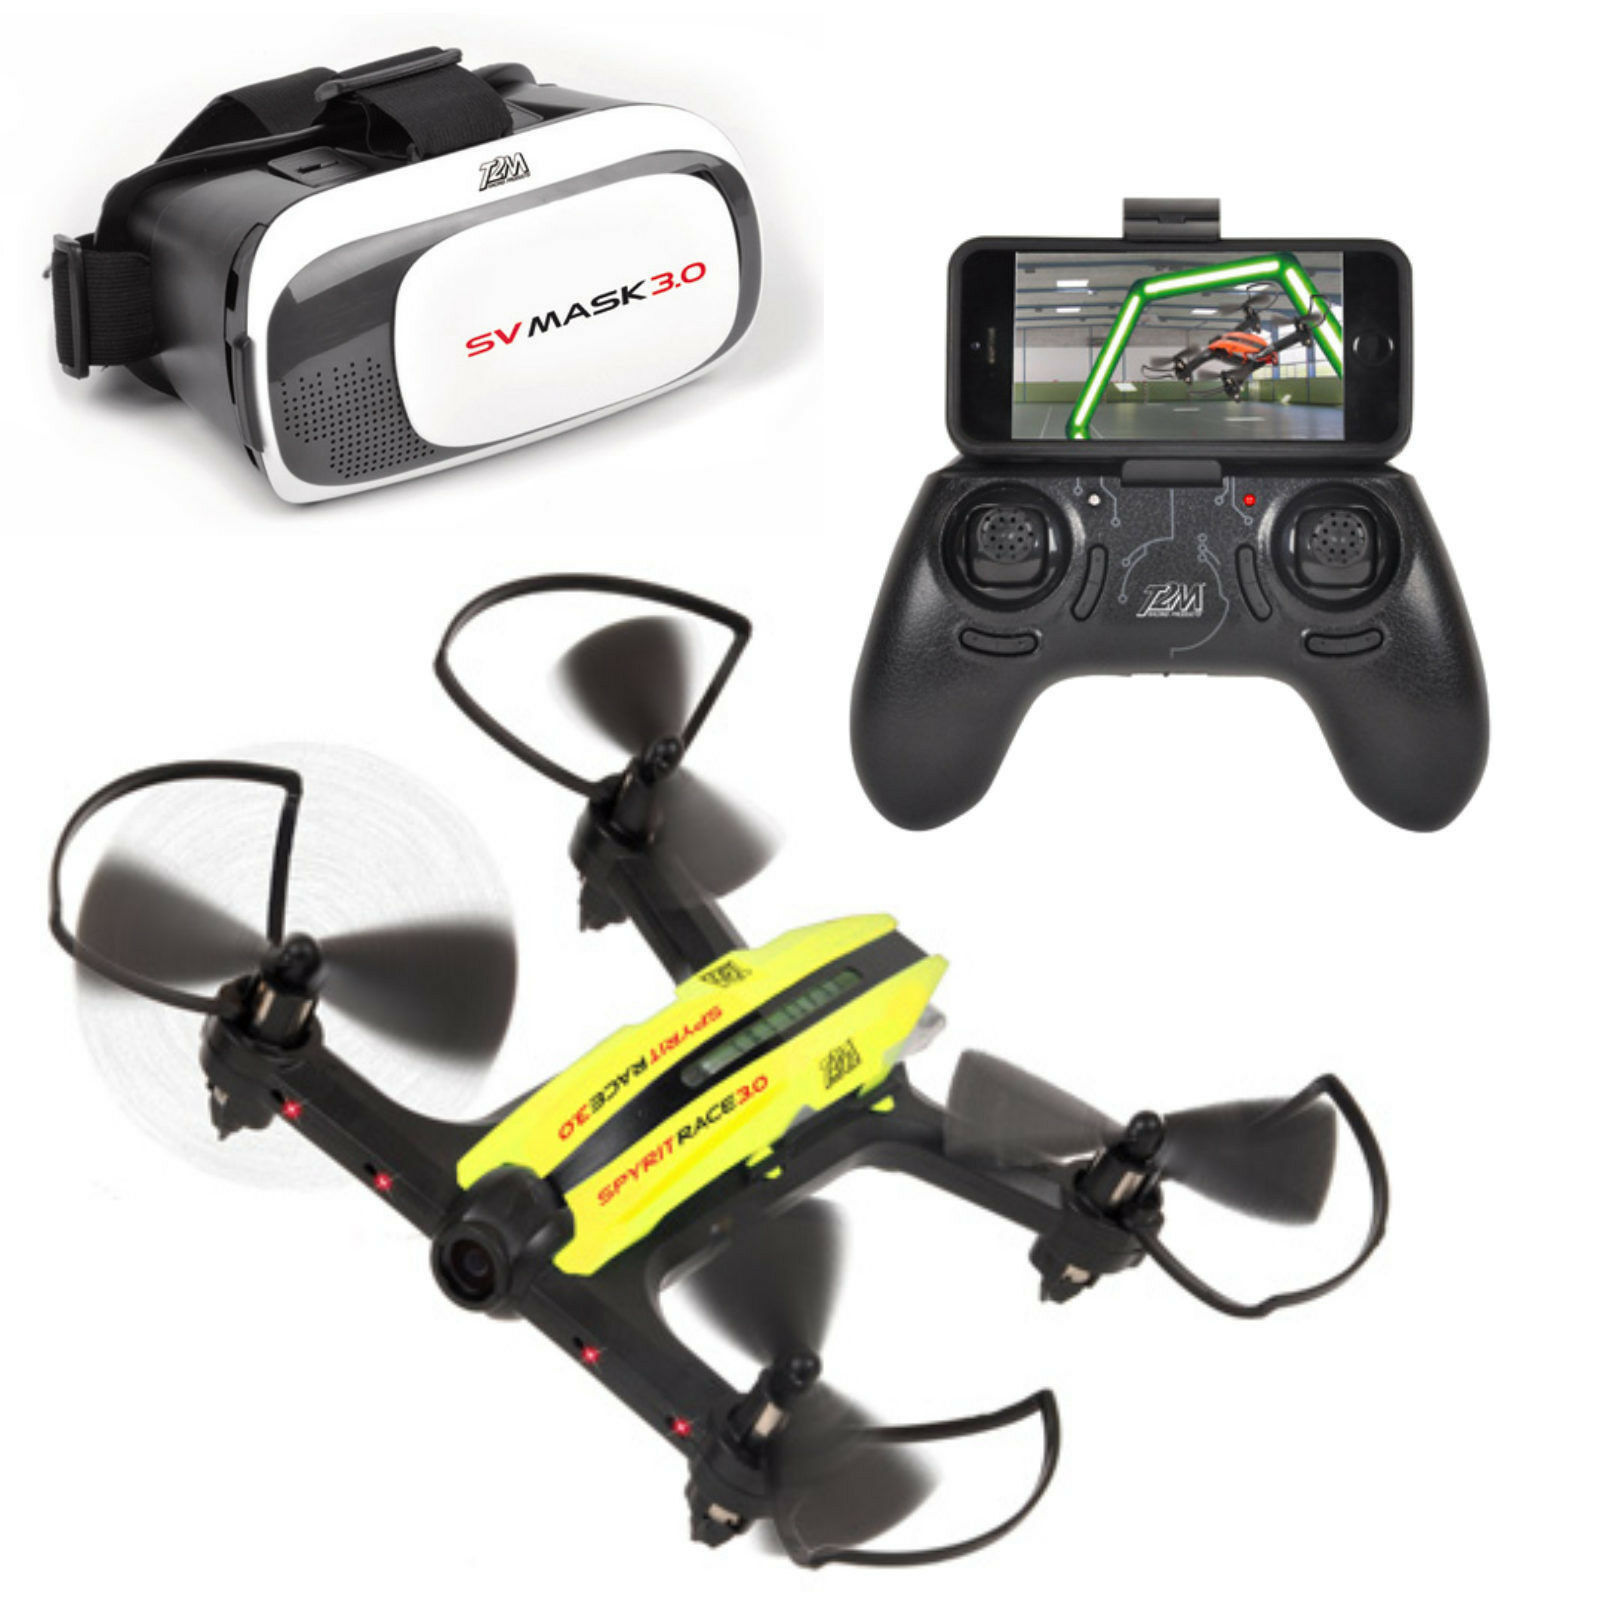 T2M spyrit Race 3.0 FPV Quadrocopter with steuerungsbrille T5184 Yellow + bluee